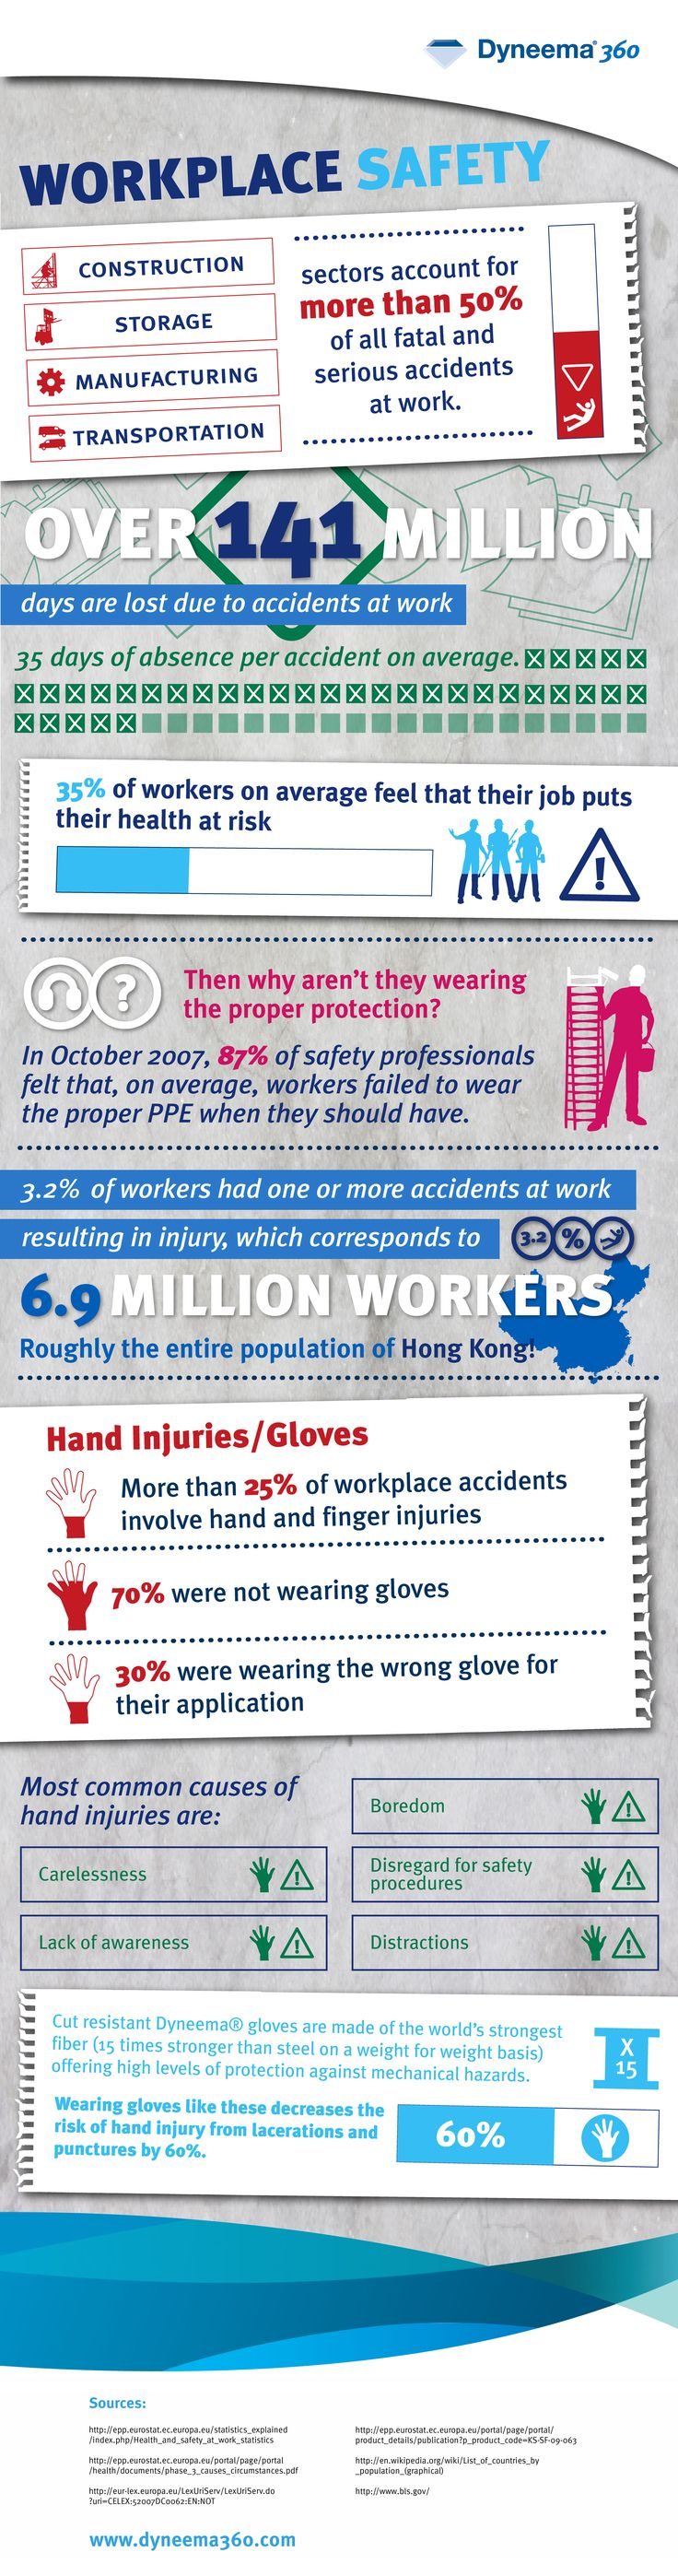 25+ unique Workplace safety ideas on Pinterest | Workplace ...